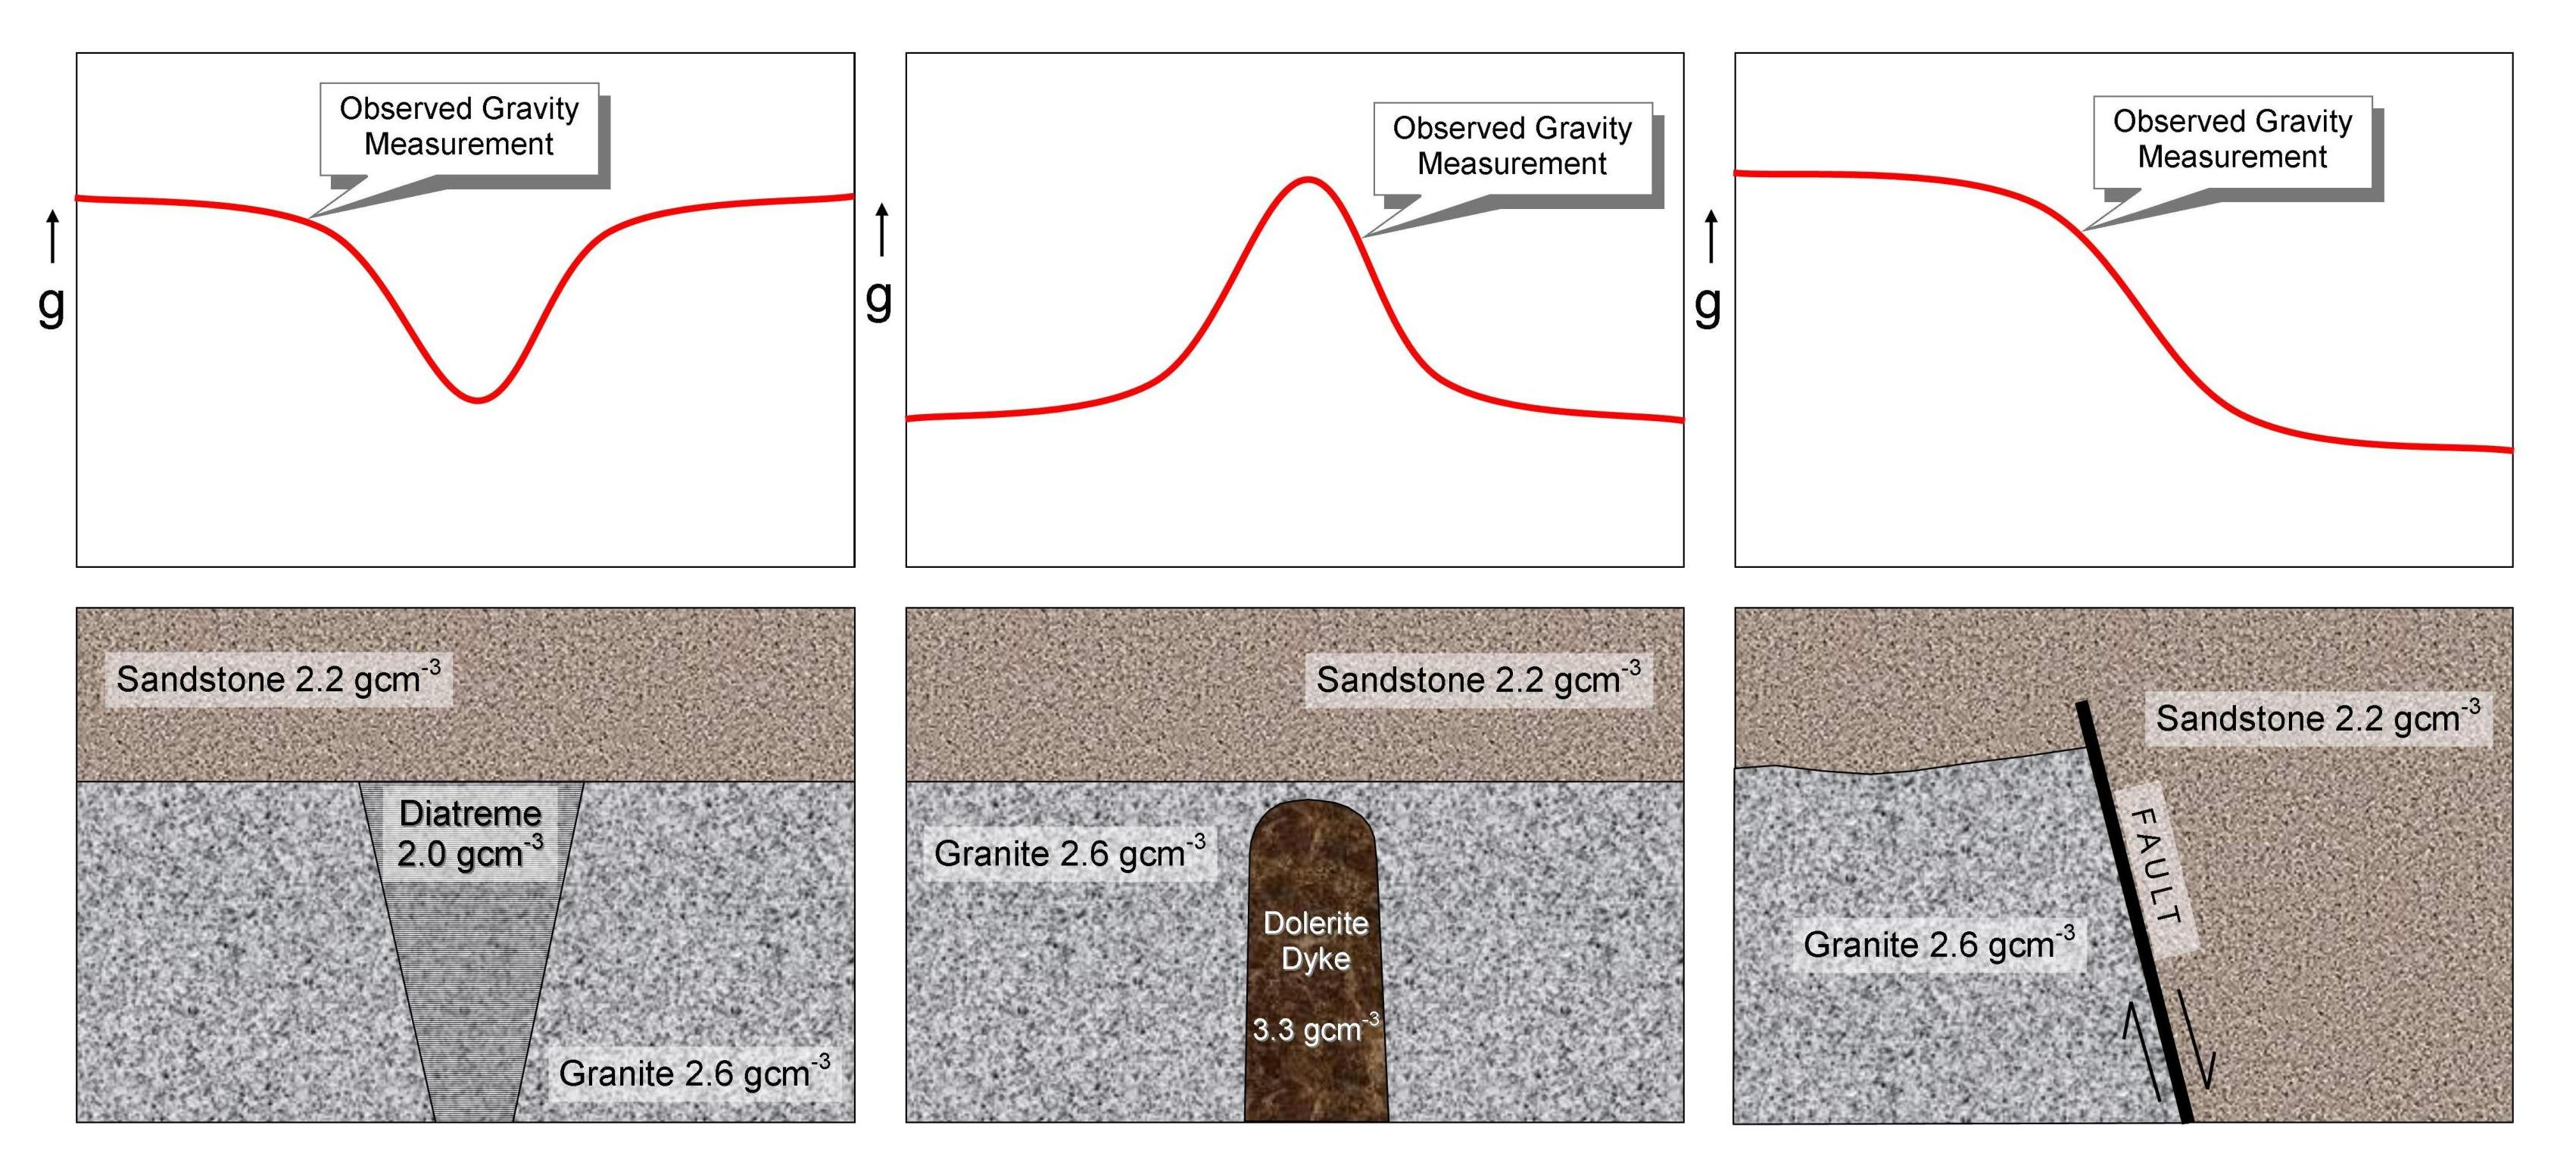 Relative variation in observed gravity readings over different geological structures.